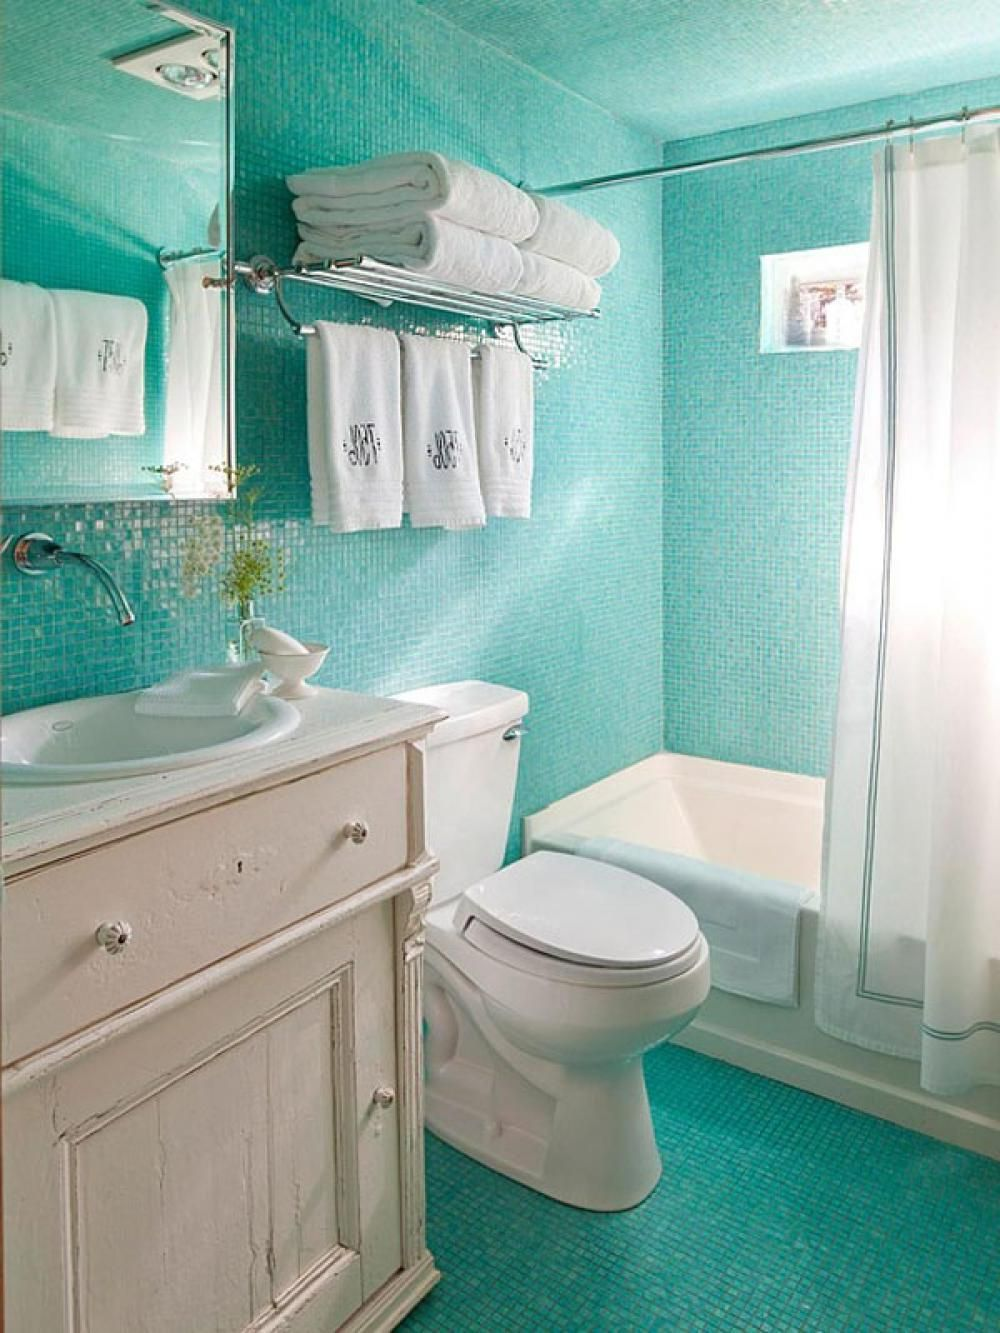 Chic Turquoise Mosaic Tiles Ocean Inspired Bathroom With White - Modern bath towels for small bathroom ideas